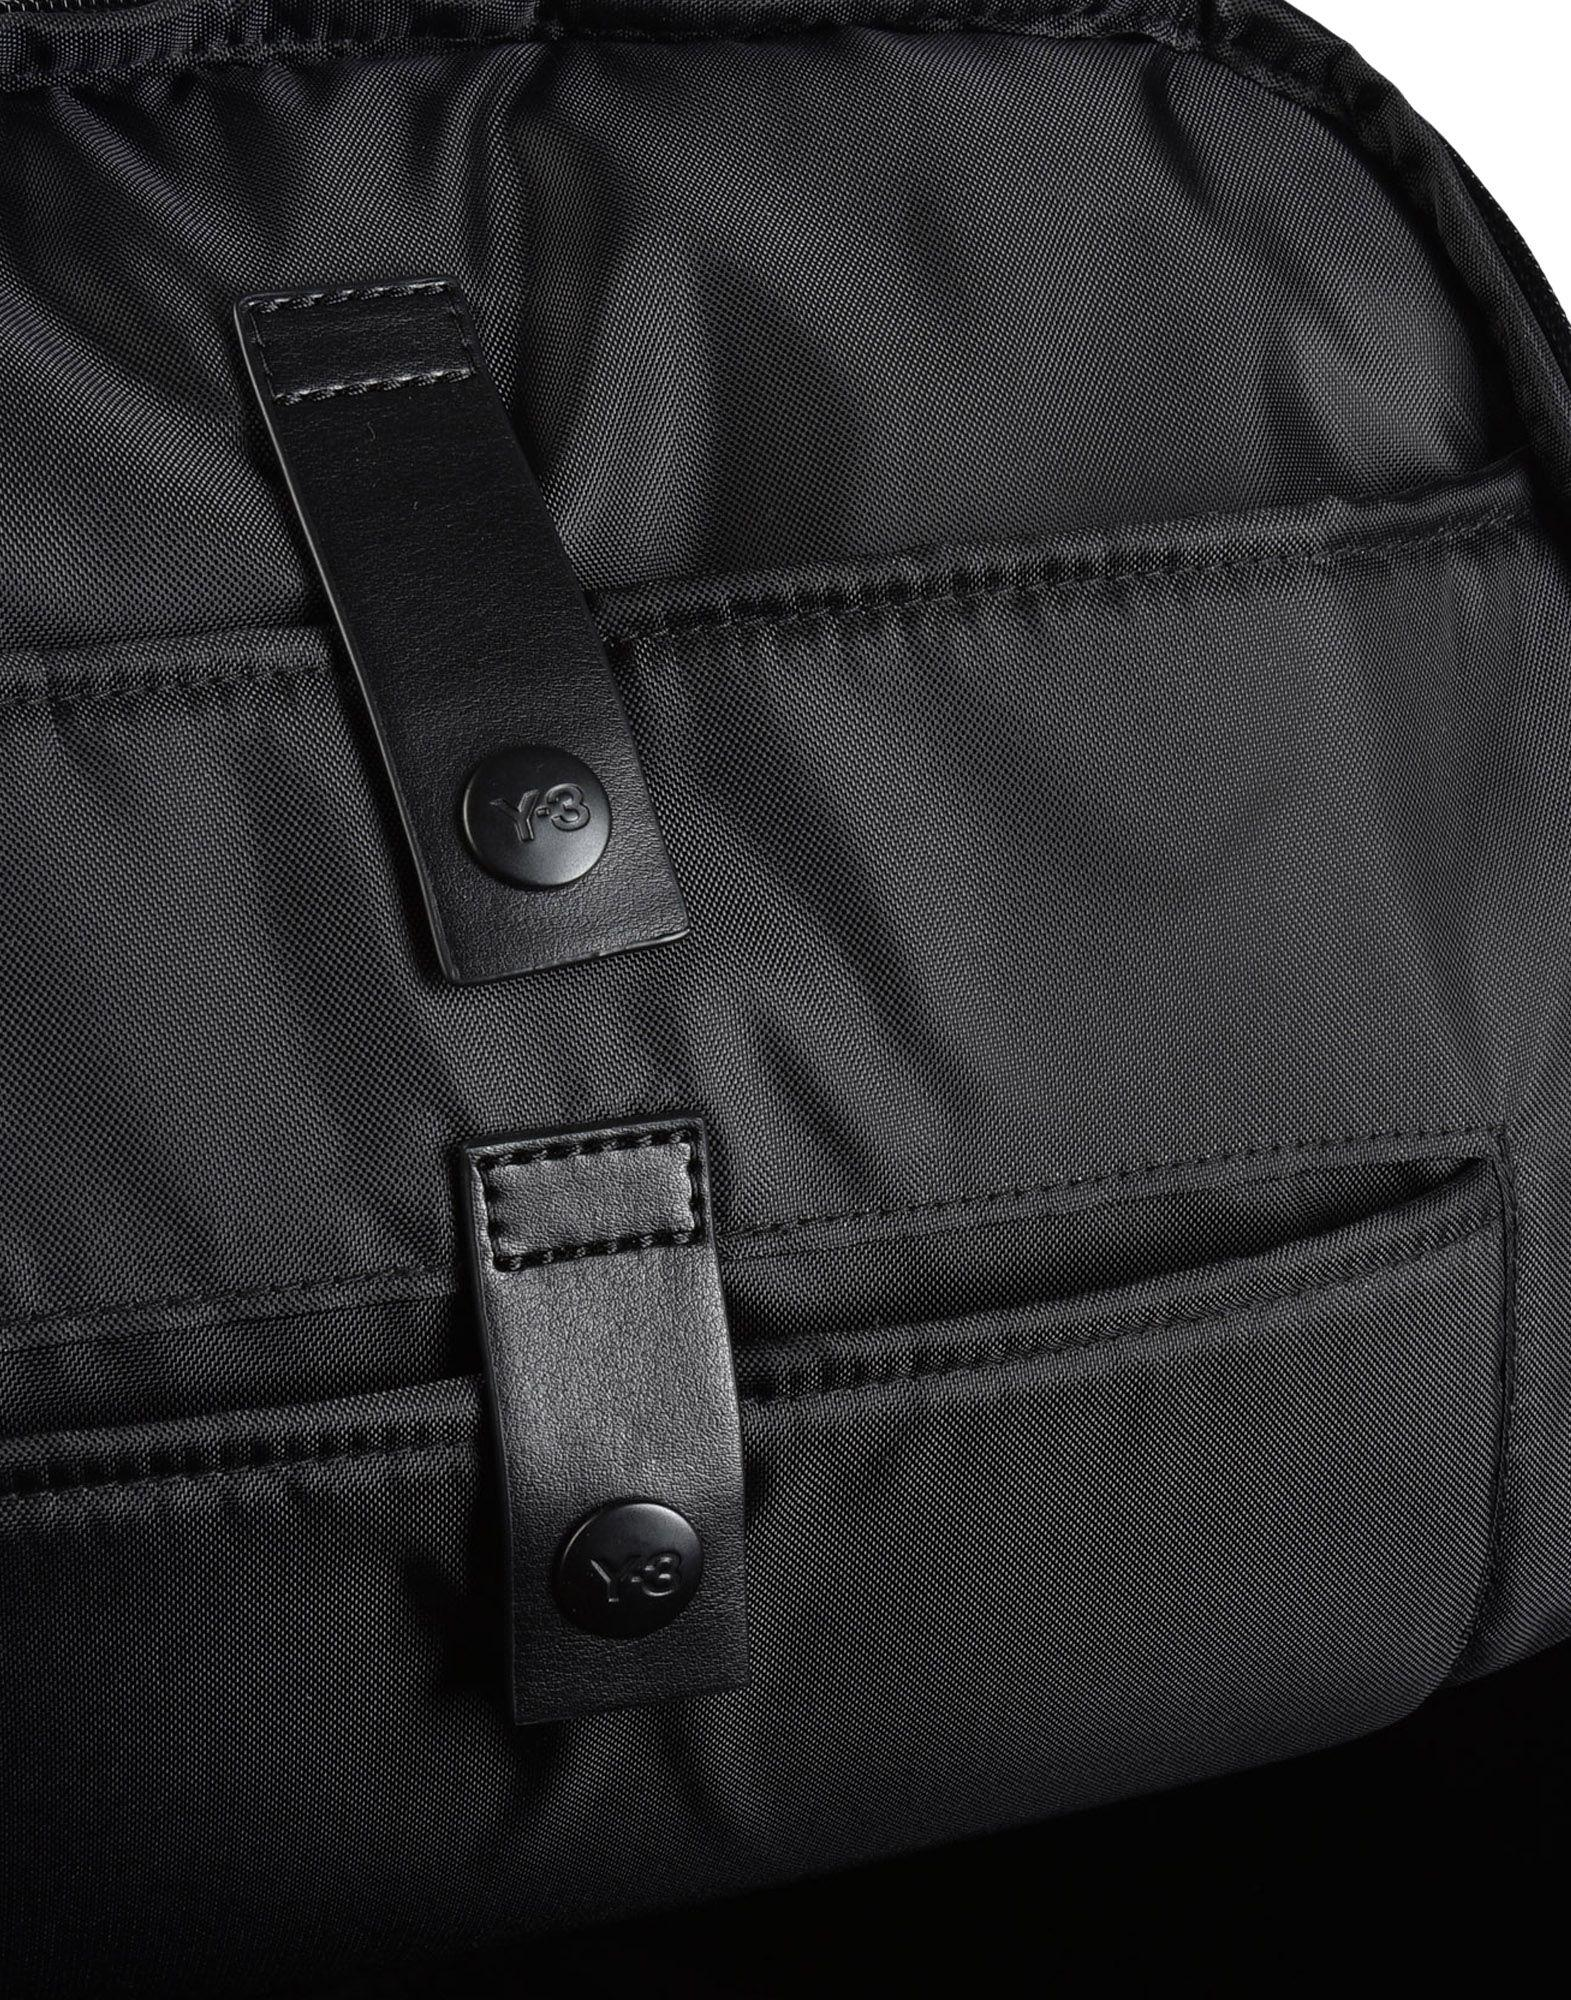 c3135ad1804a Lyst - Y-3 Qasa Backpack in Gray for Men